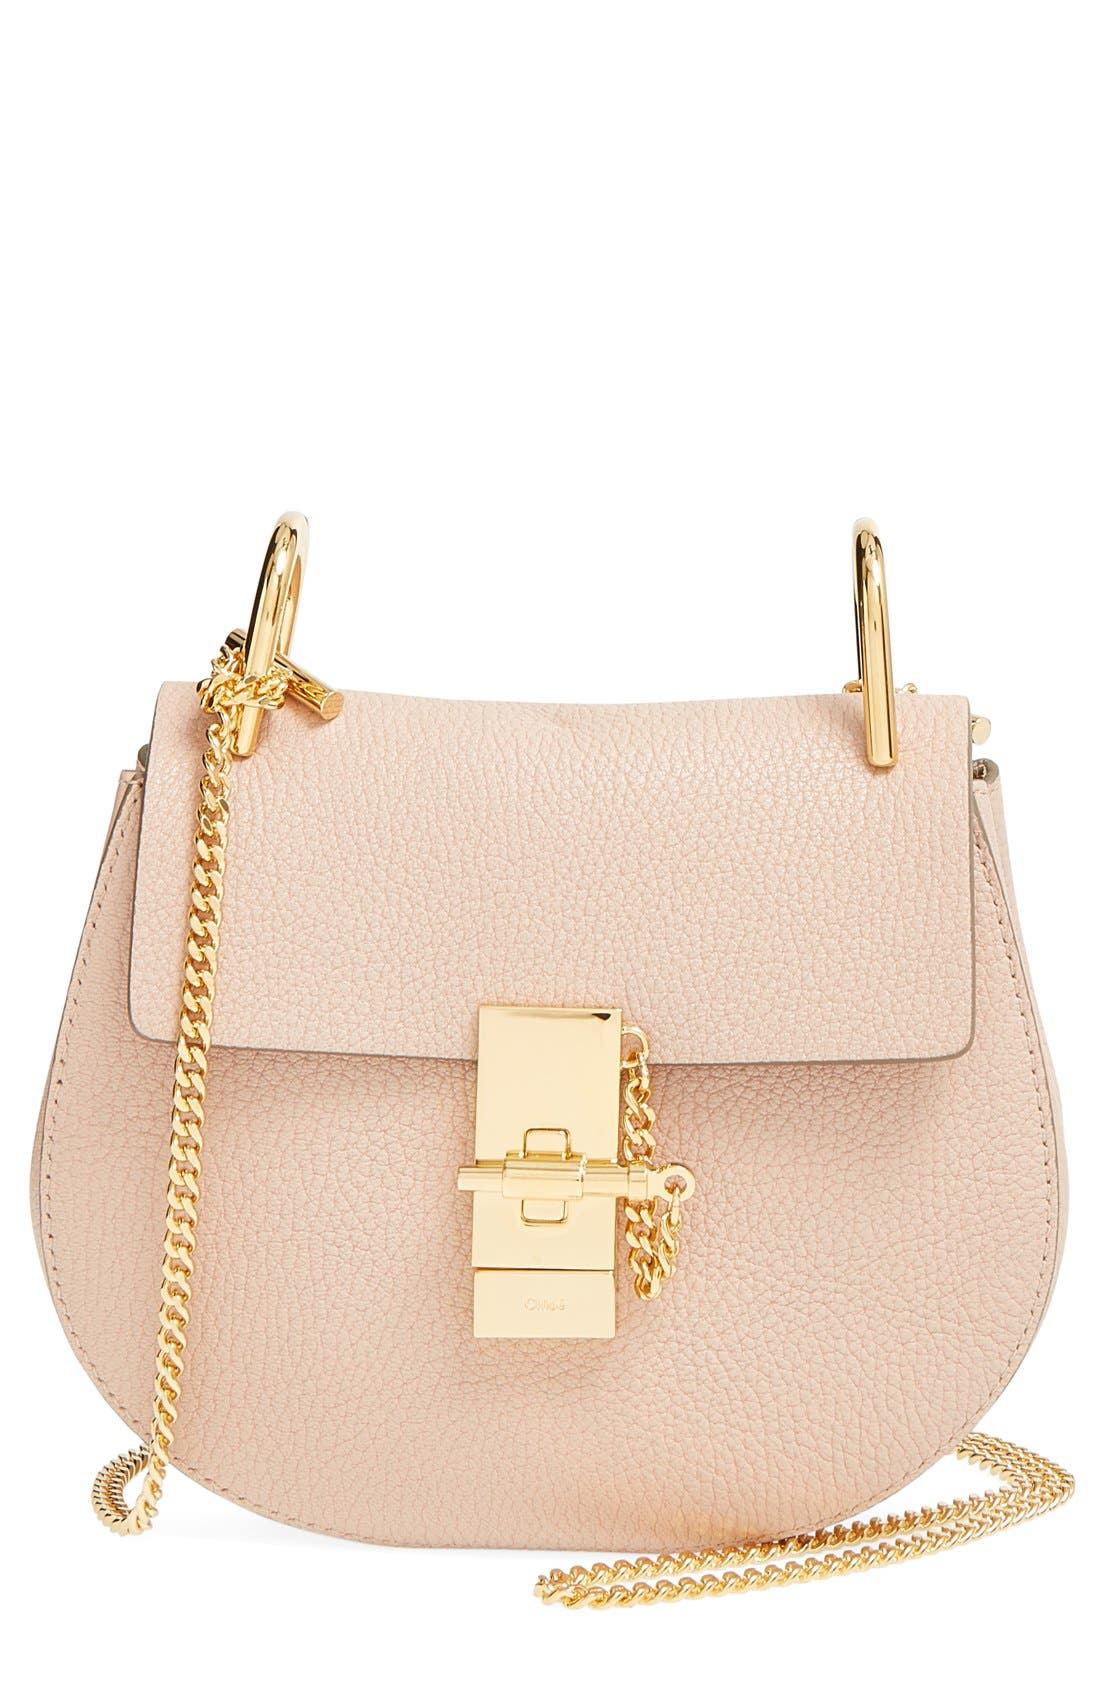 Main Image - Chloé 'Mini Drew' Leather Shoulder Bag